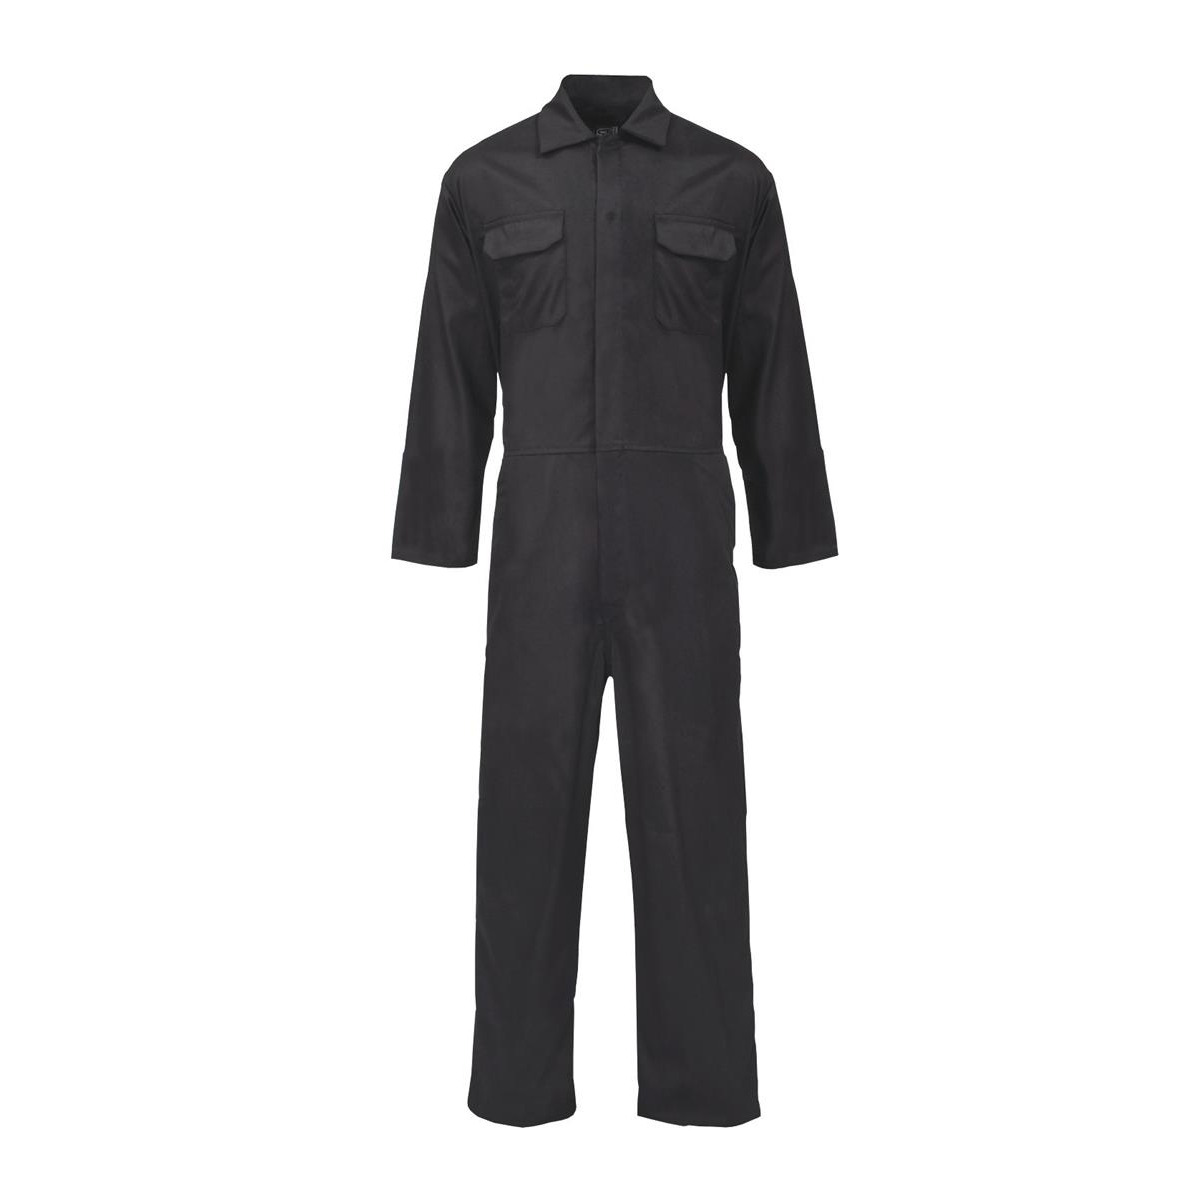 ST Coverall Basic with Popper Front Opening PolyCotton Small Black Ref 51701 *Approx 3 Day Leadtime*